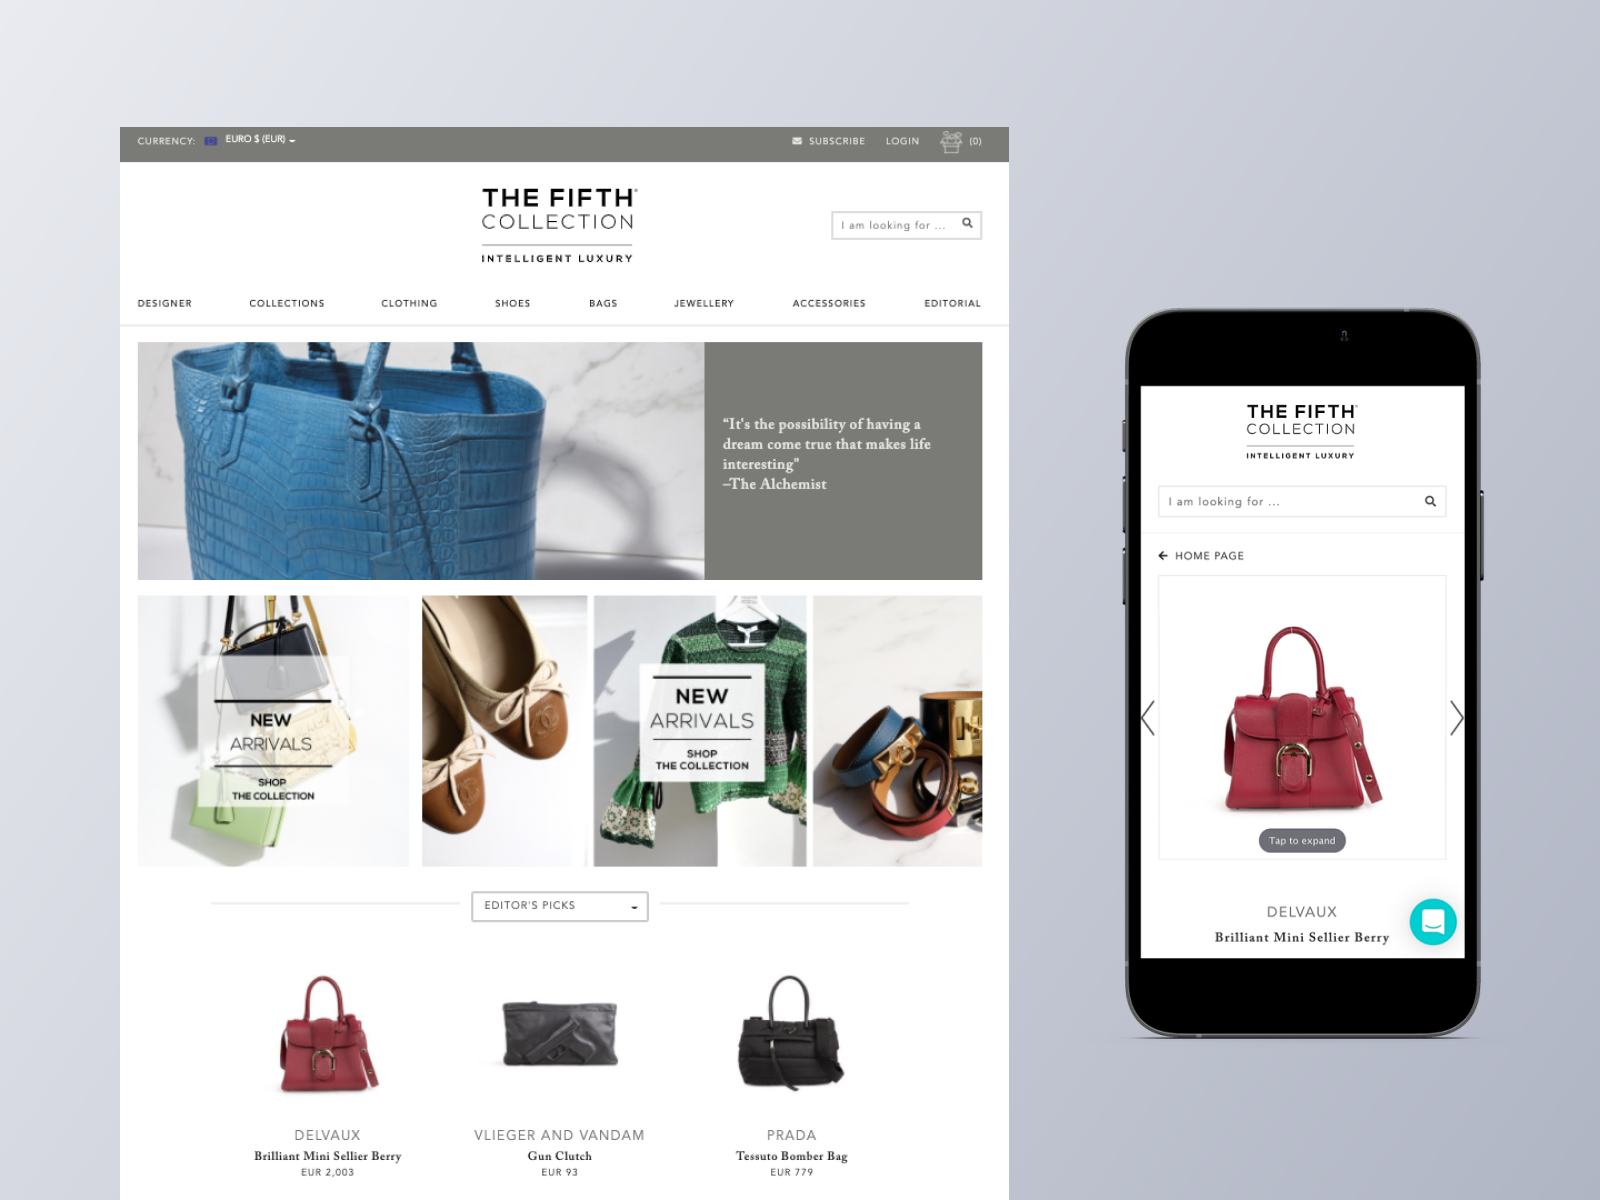 the fith collection case study